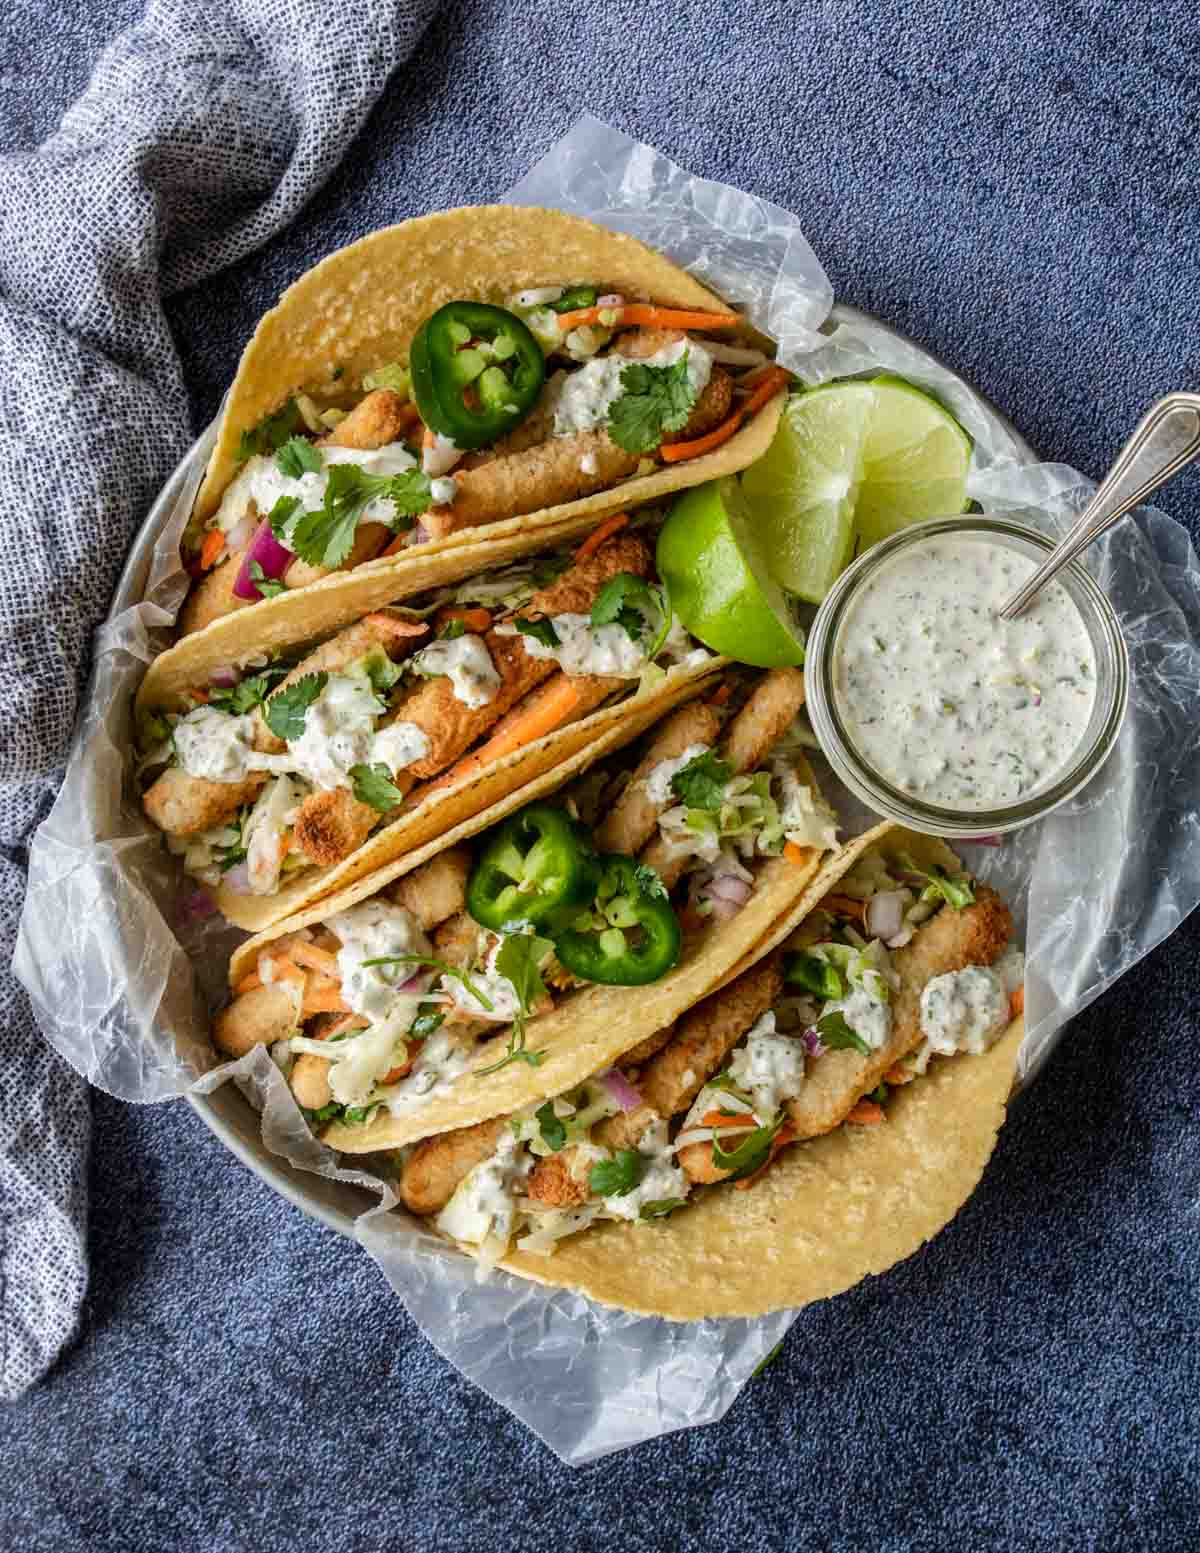 a tray full of fish stick tacos in corn tortillas